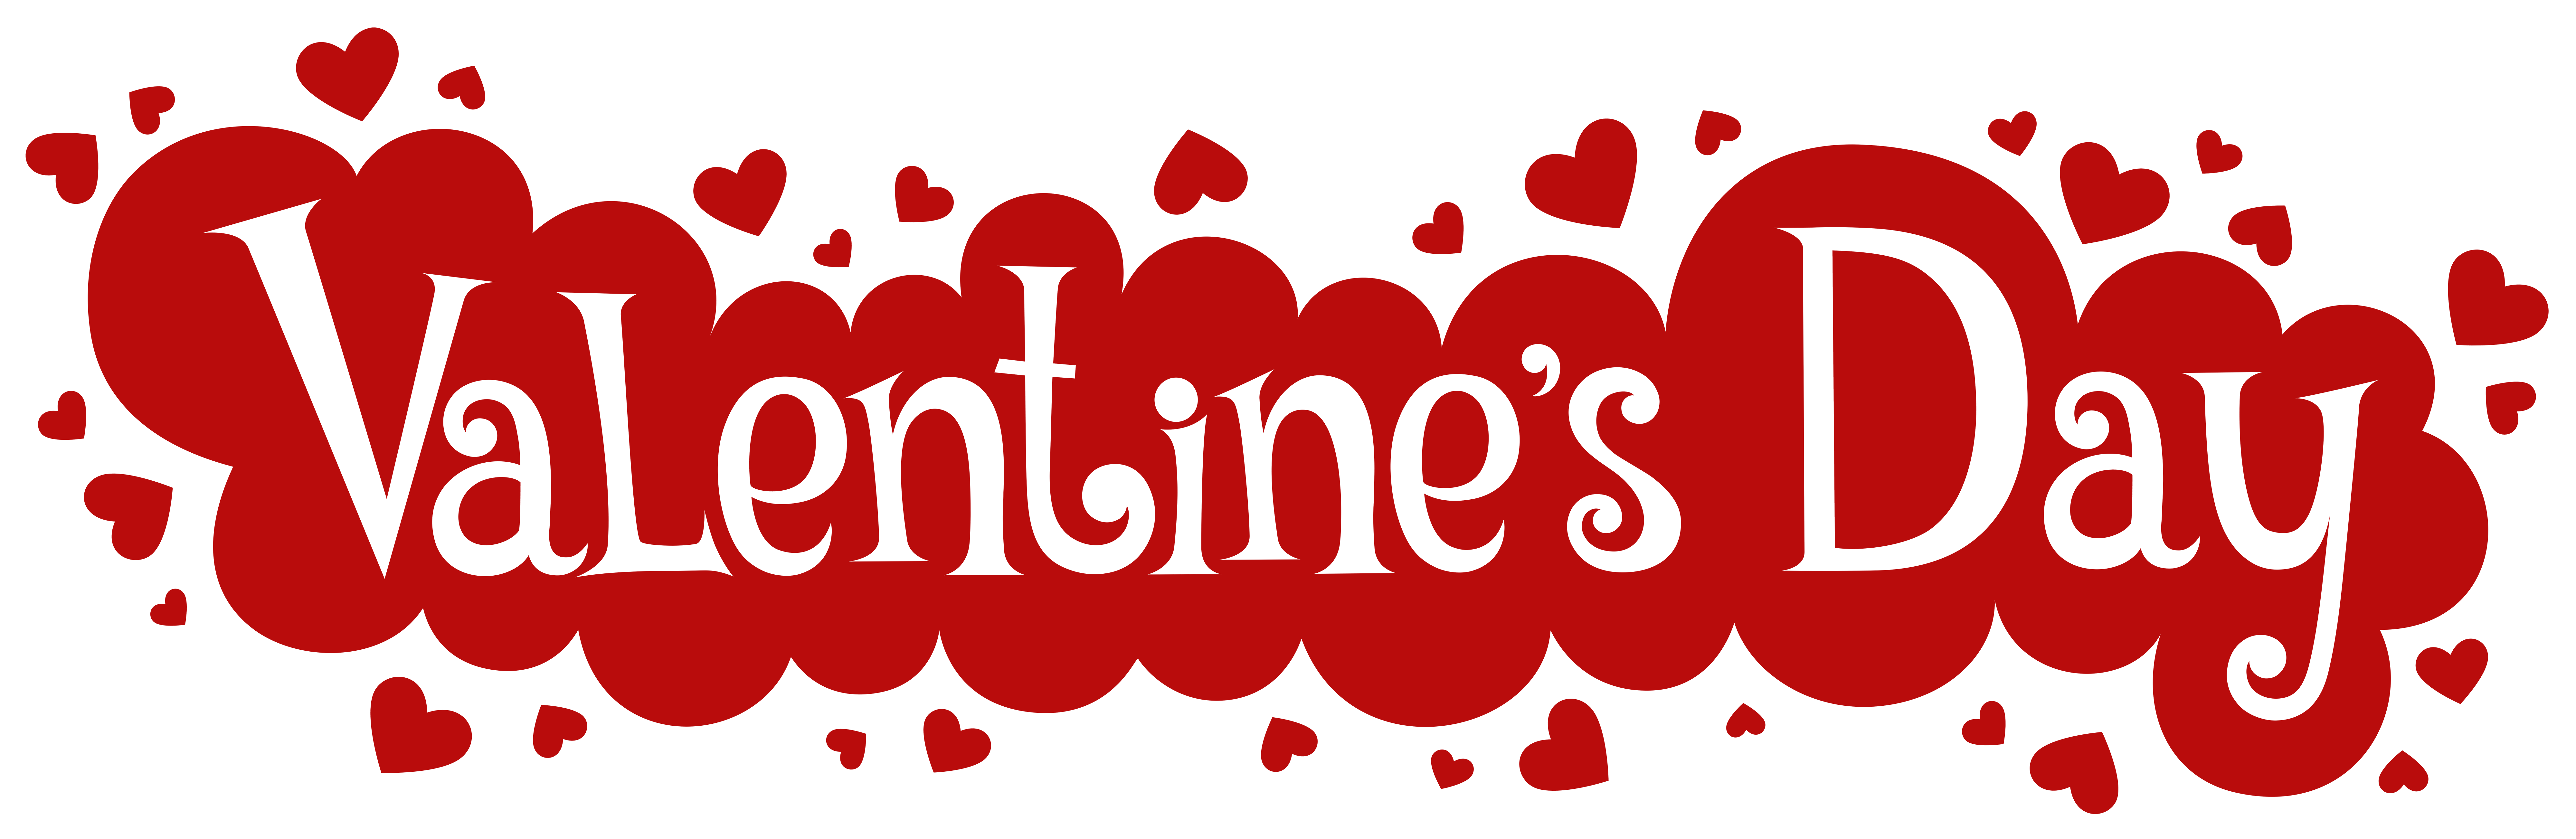 Valentines Day Clipart Png & Free Valentines Day Clipart ...